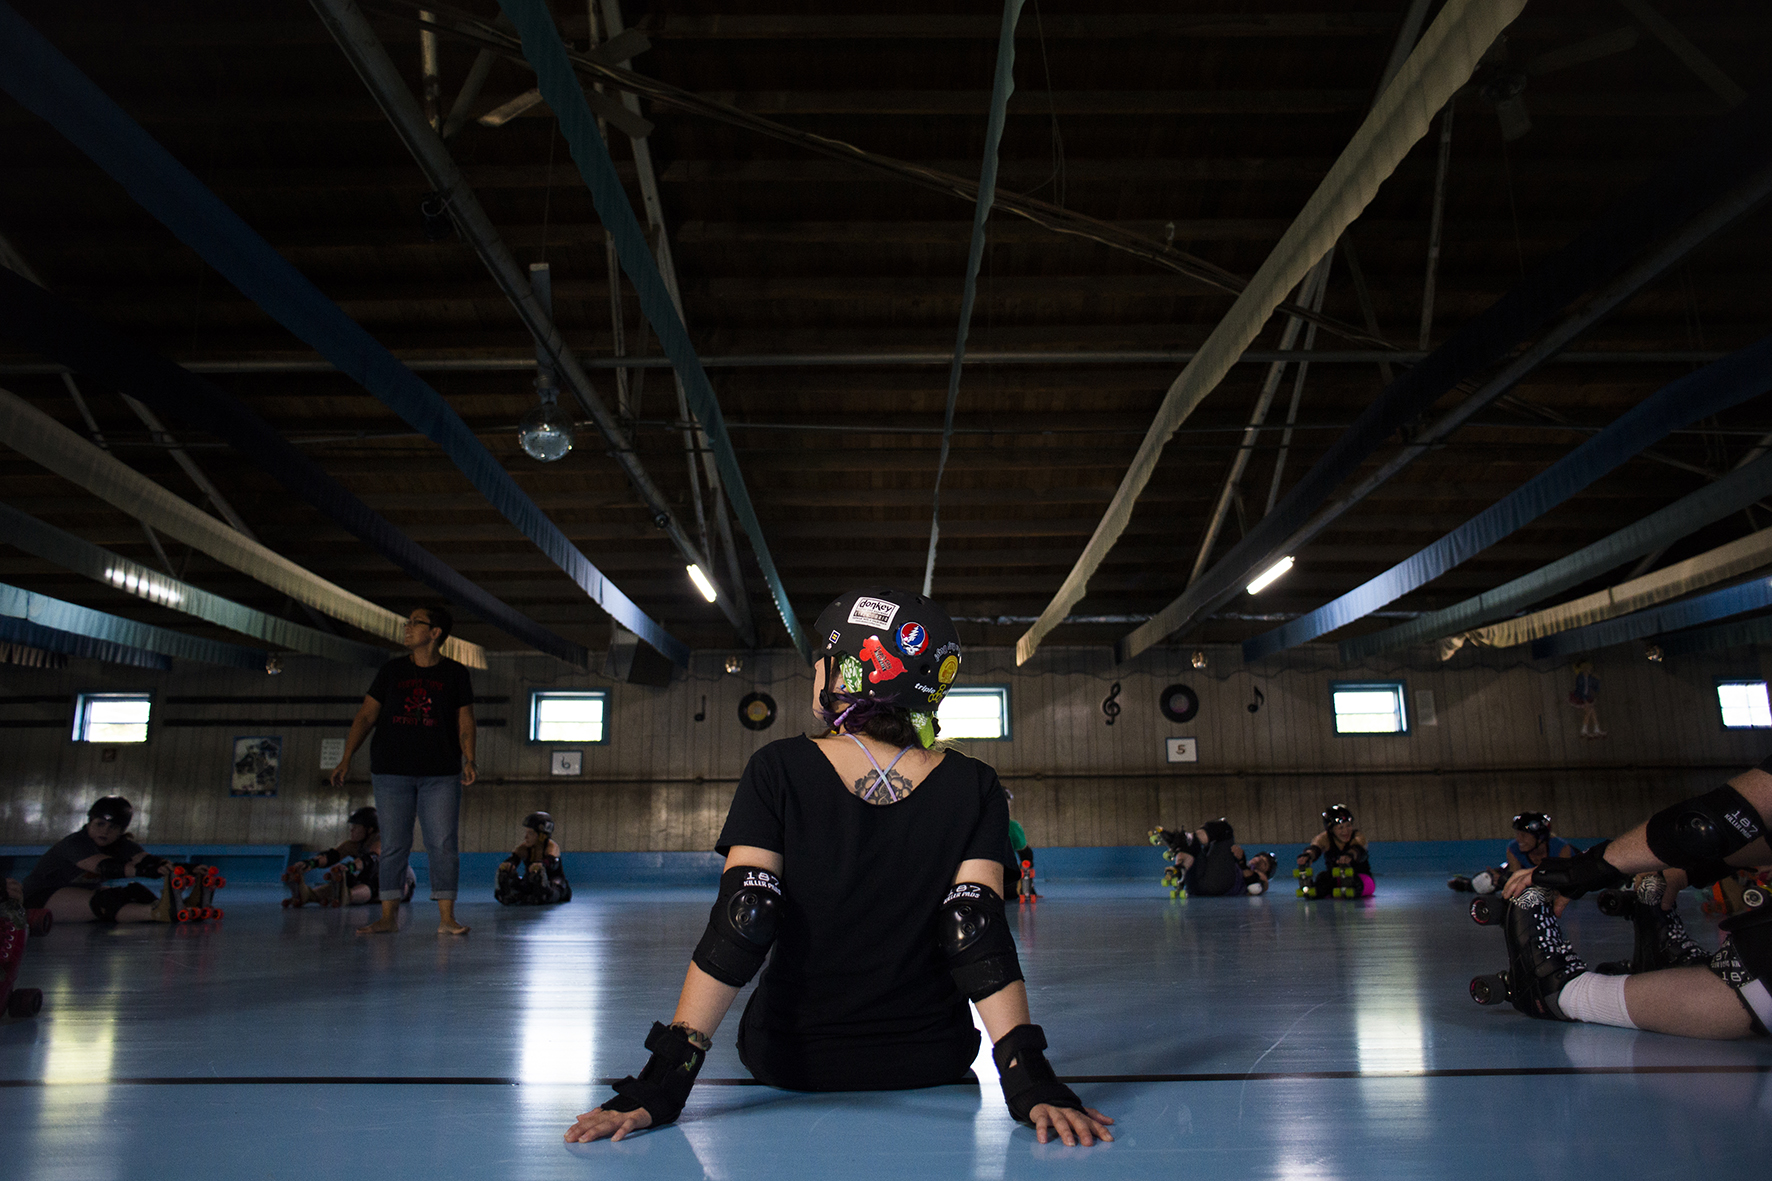 Abby Walter, known as Luna Killjoy, prepares to stretch at practice on Sunday, September 7, 2014 at Dow Roller Rink in Nelsonville, Ohio.